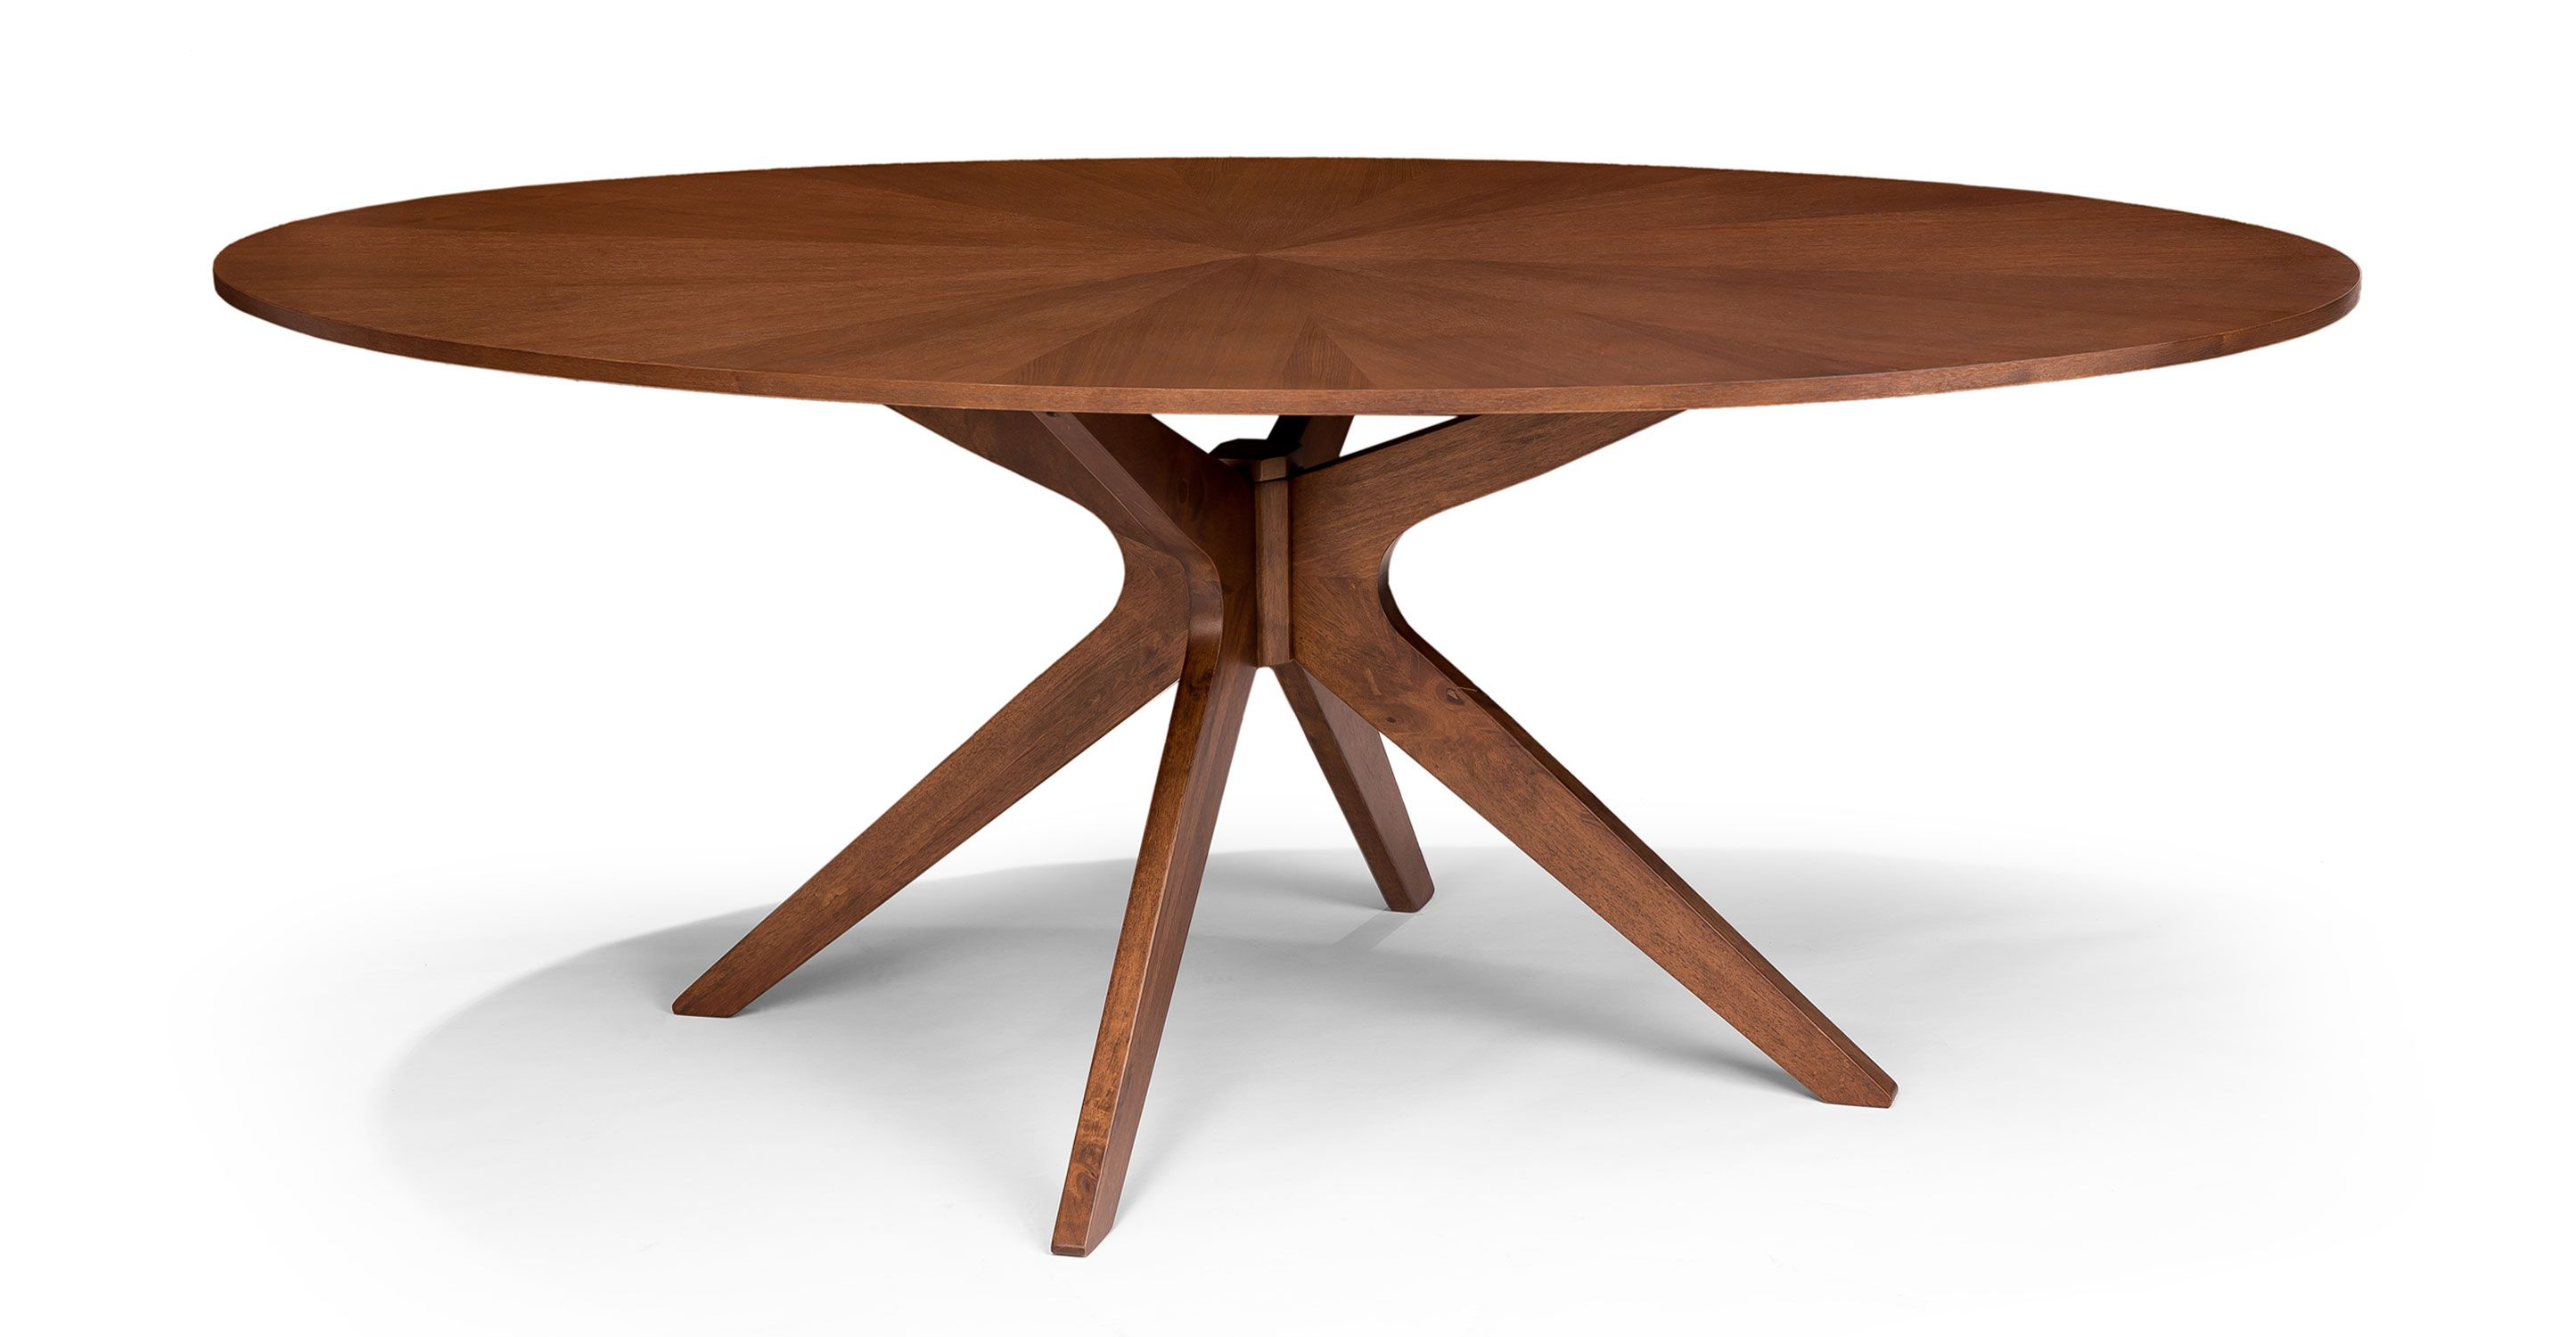 Conan oval dining table wood tables bryght modern for On the dining table